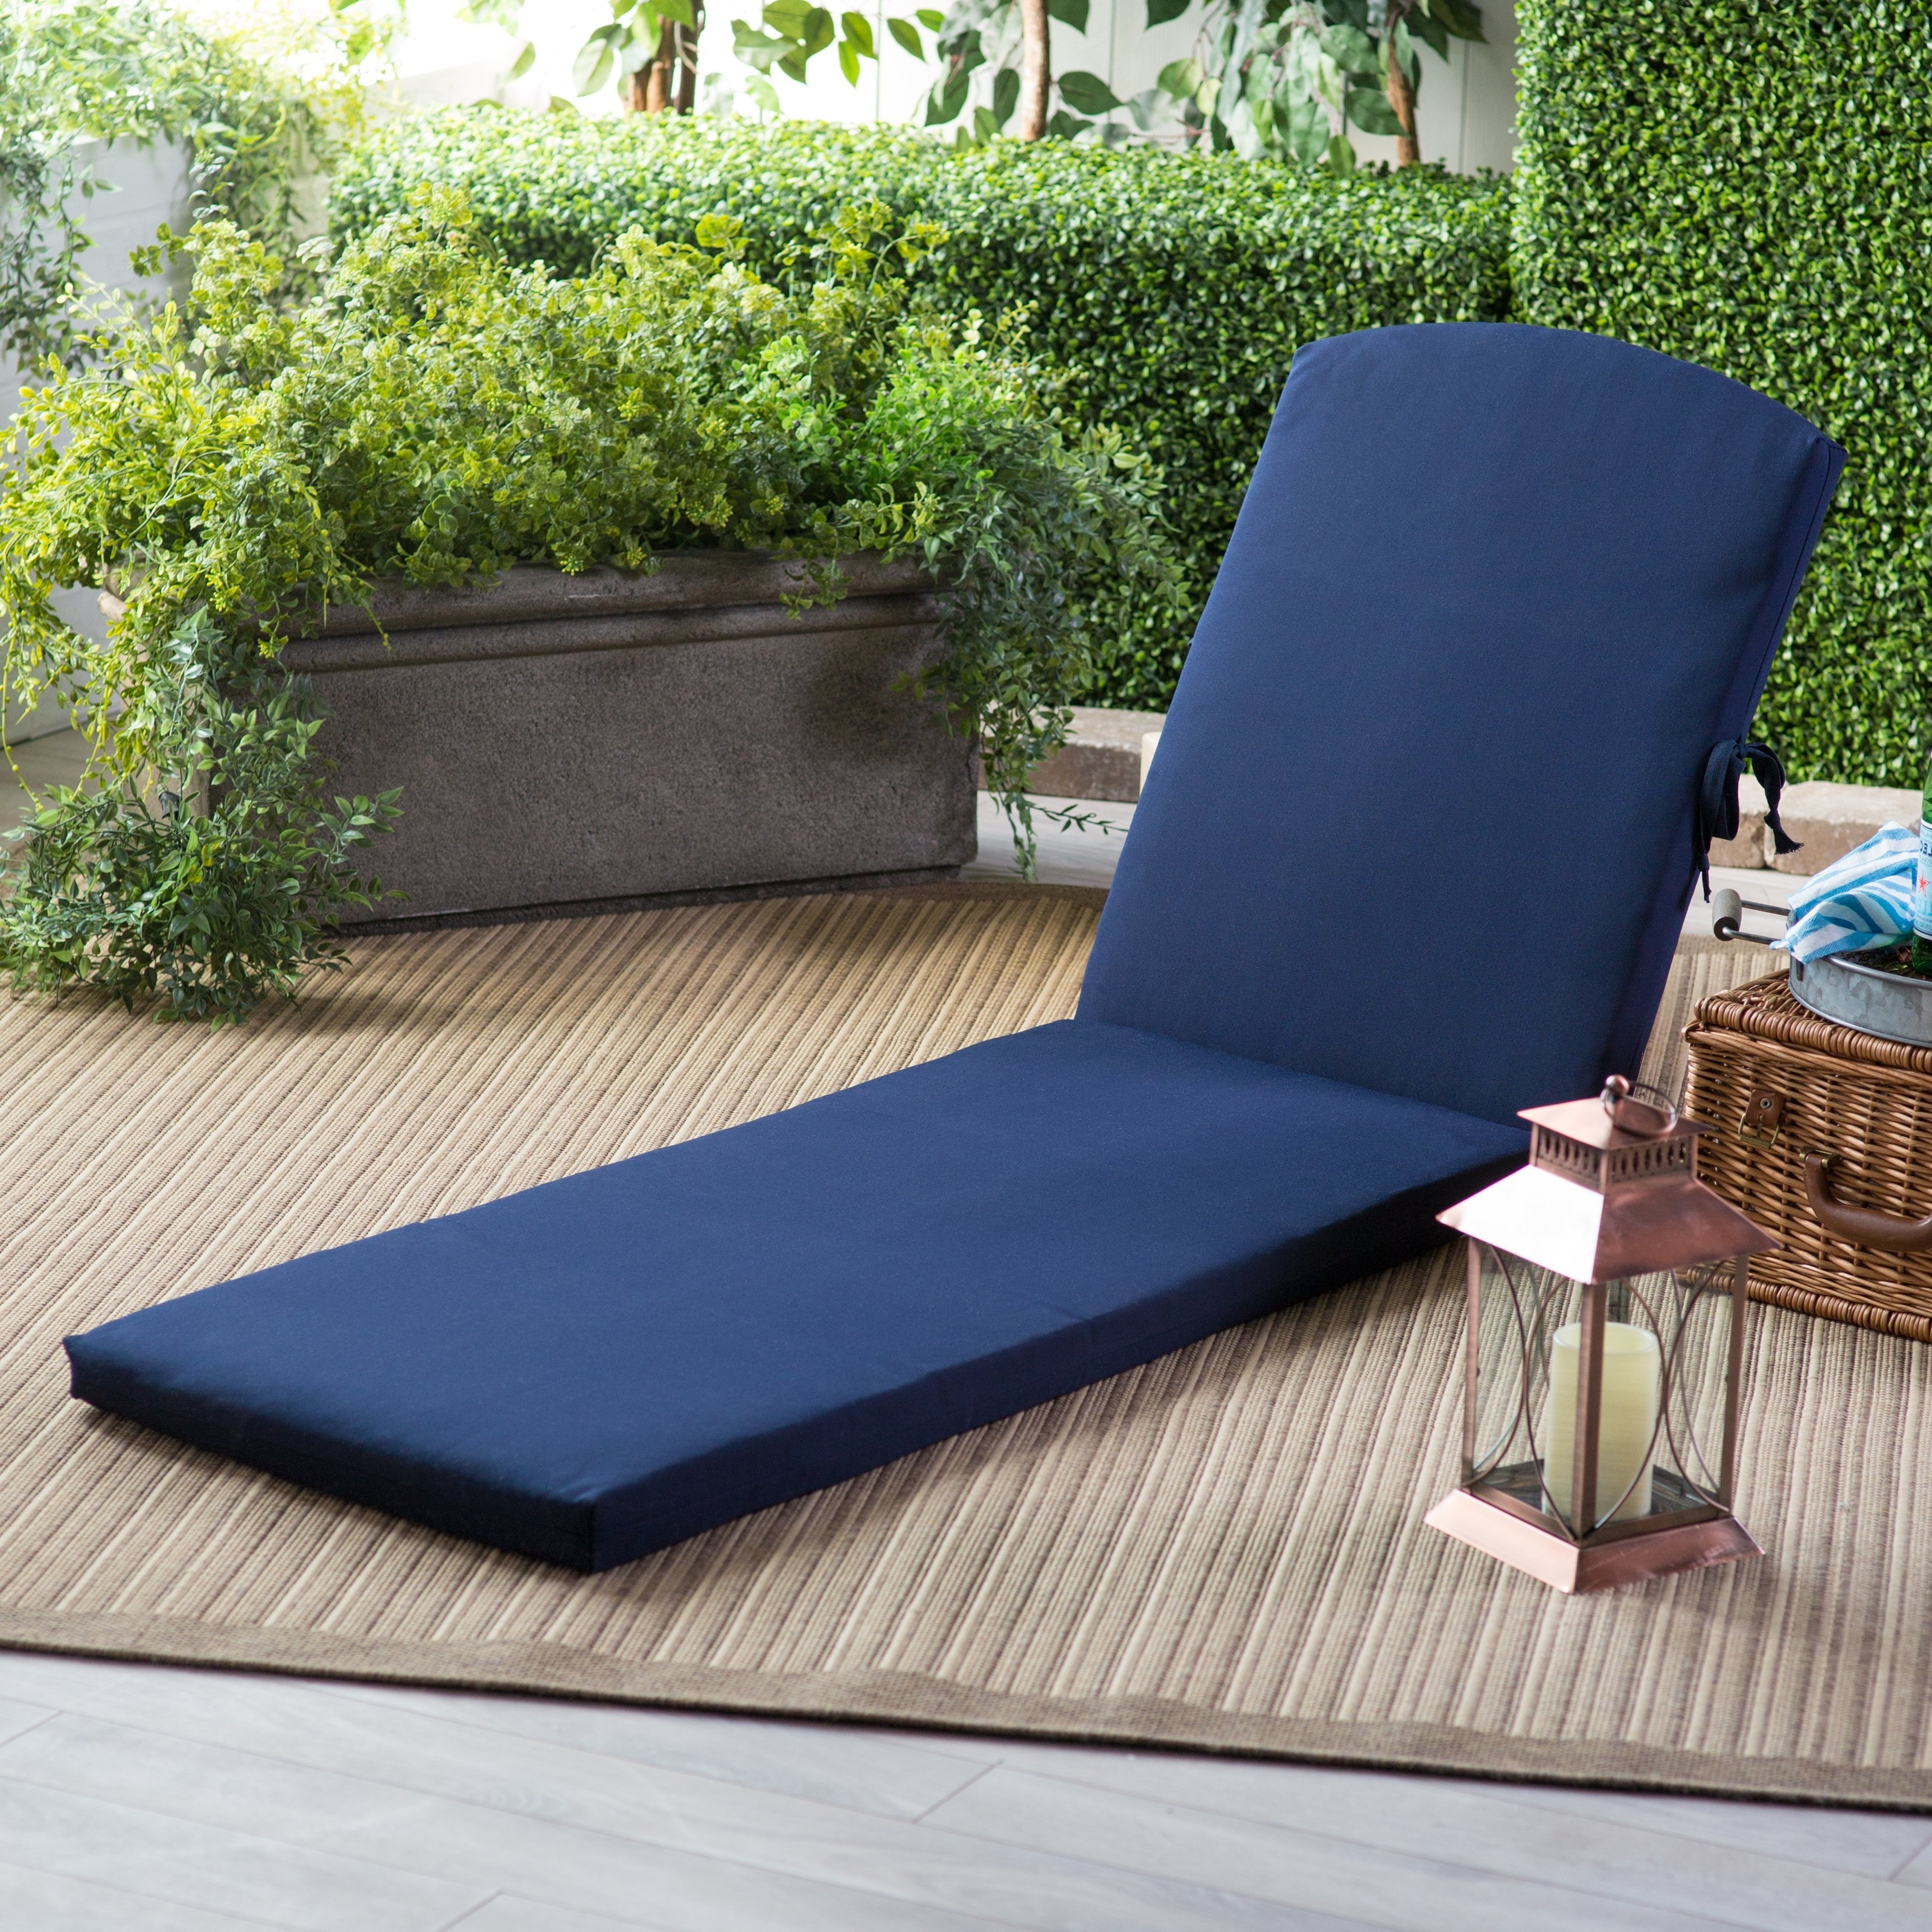 cushion chair home designs a cushions b nz f in products size round brisbane kmart sale ebay ee cabana bunnings full cobalt australia chairs perth chaise for lounge outdoor